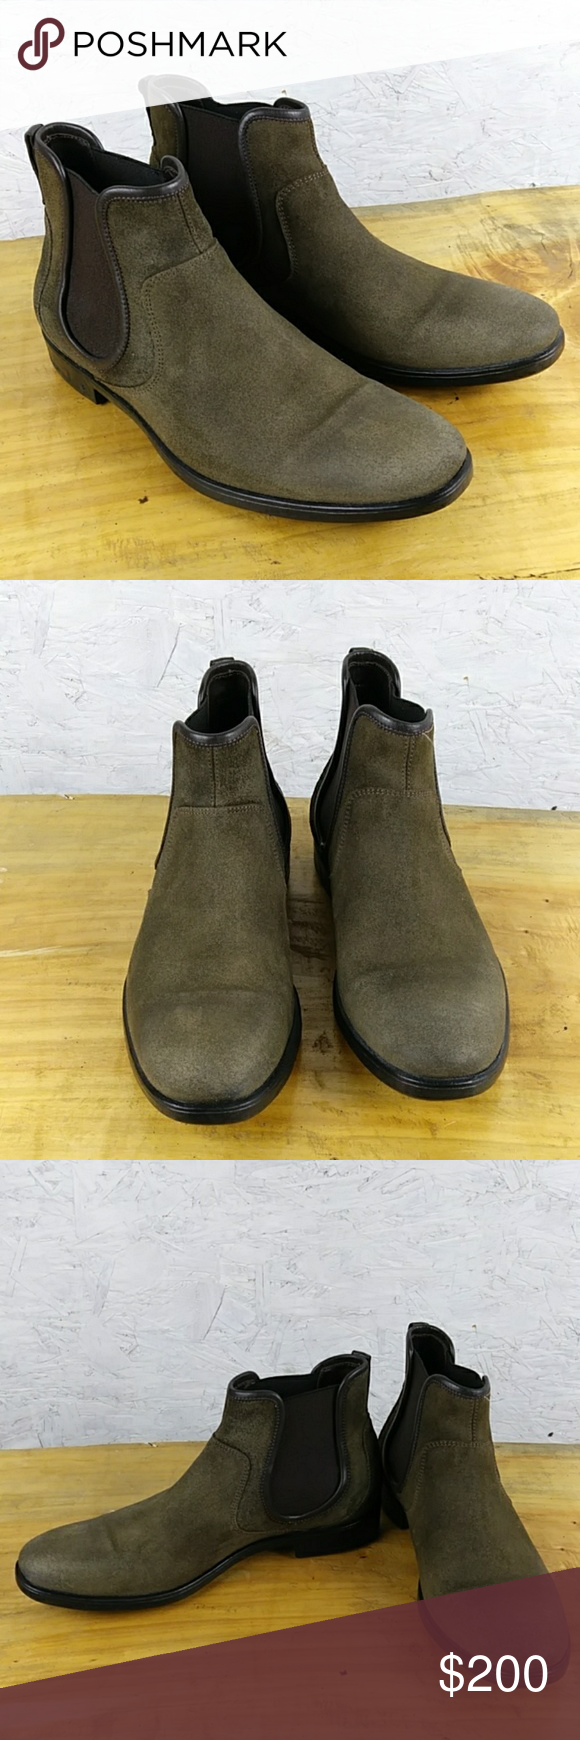 91a10e24503ed John Varvatos men's boots Great condition John vavatos Chelsea boots with  elasticized gore on sides leather upper rubber sole Espresso color approx  Slip-on ...